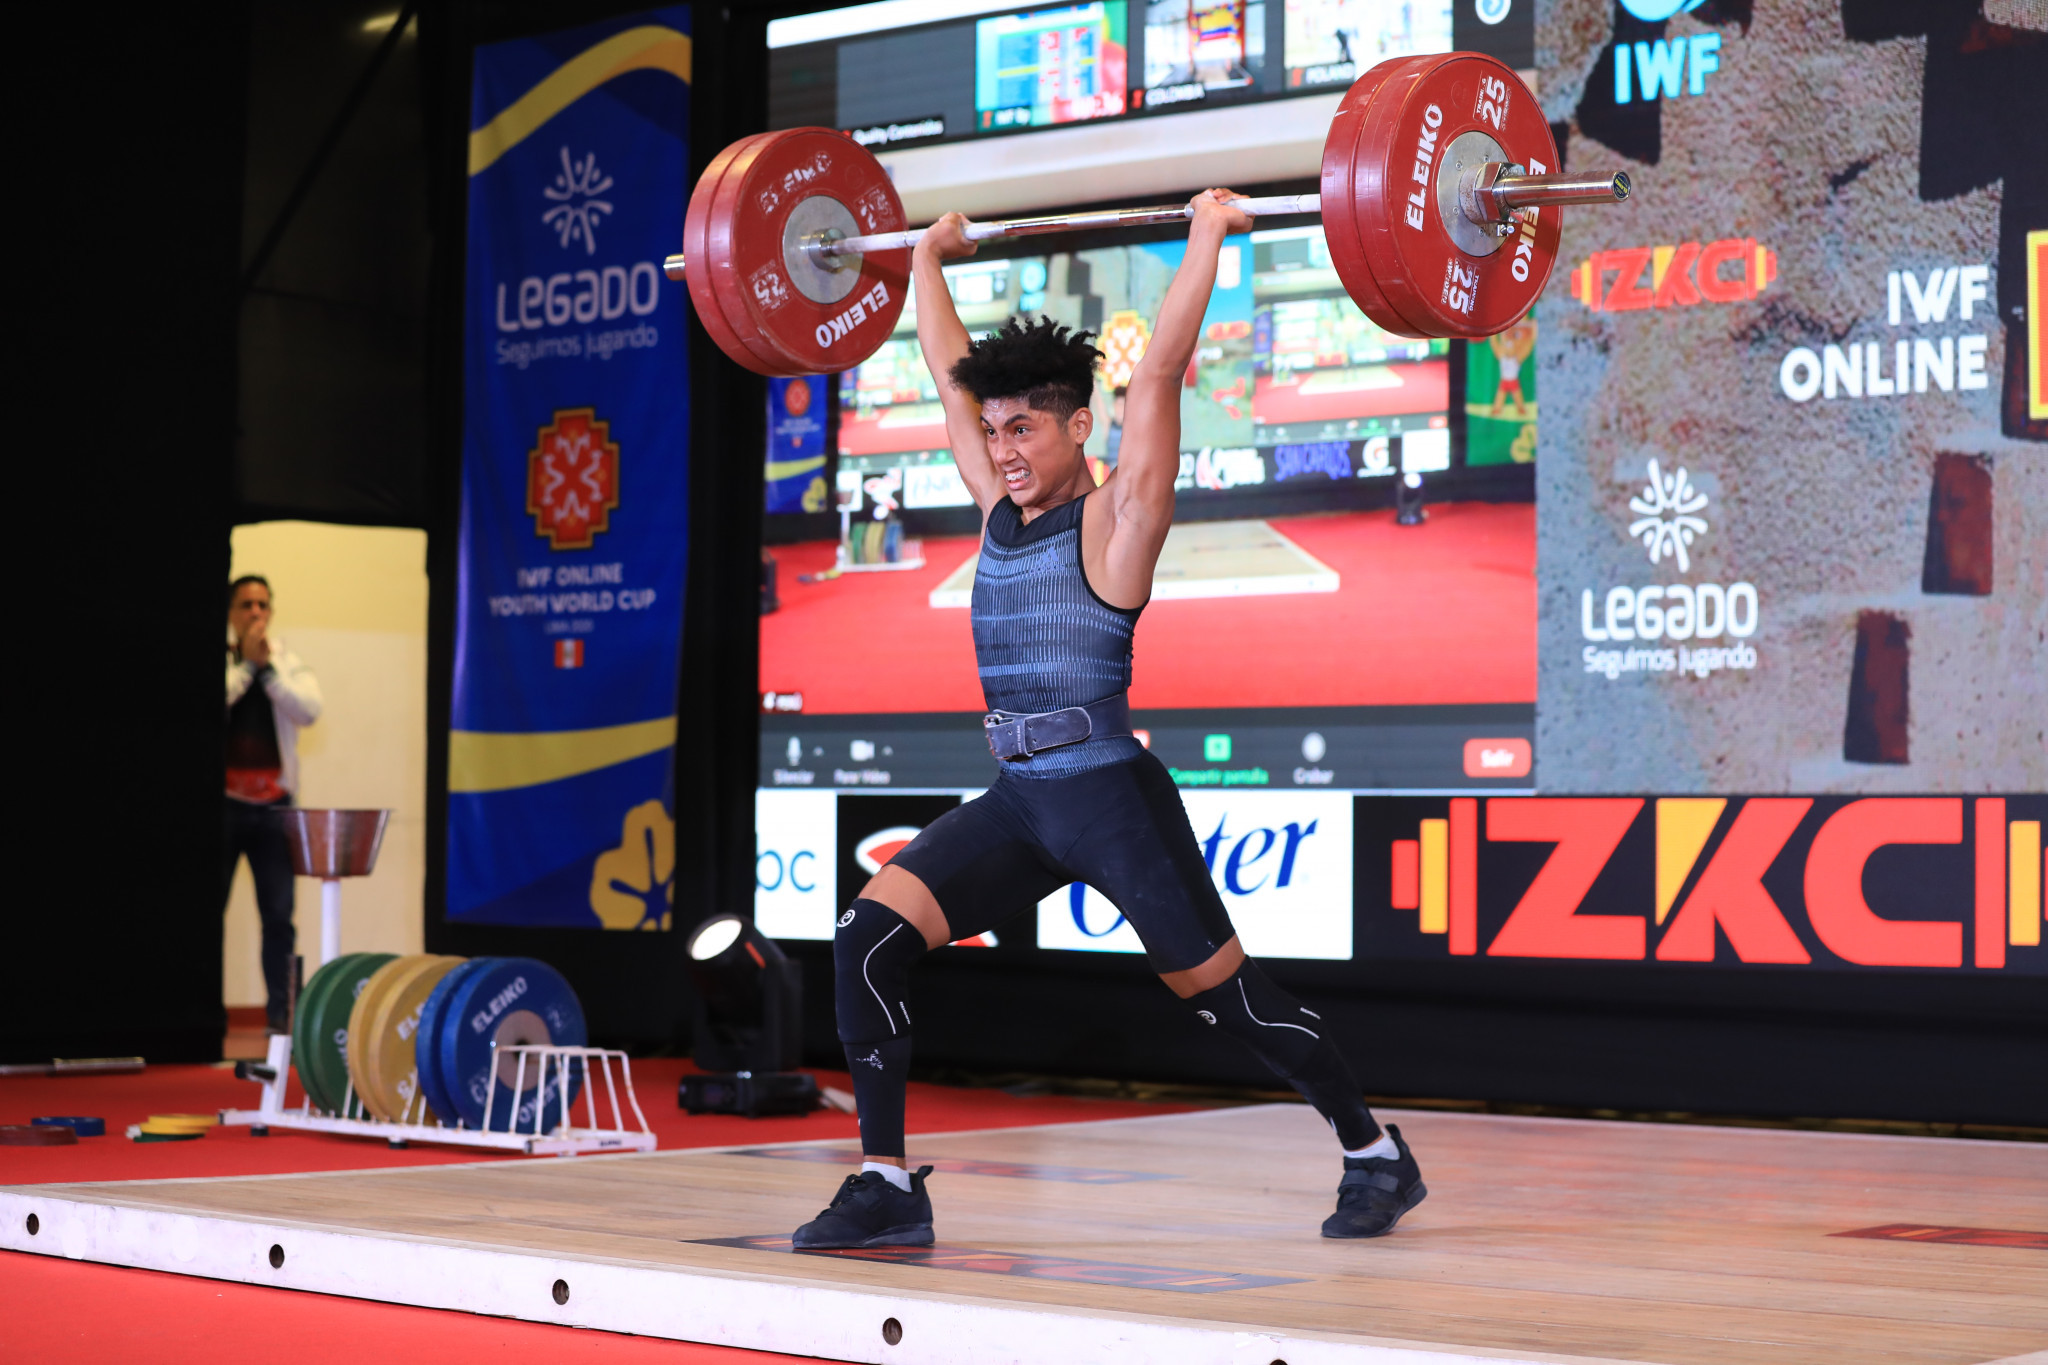 Peru failed to add to their medal tally on day two with some less experienced athletes gaining some experience on the big stage ©Peru Weightlifting